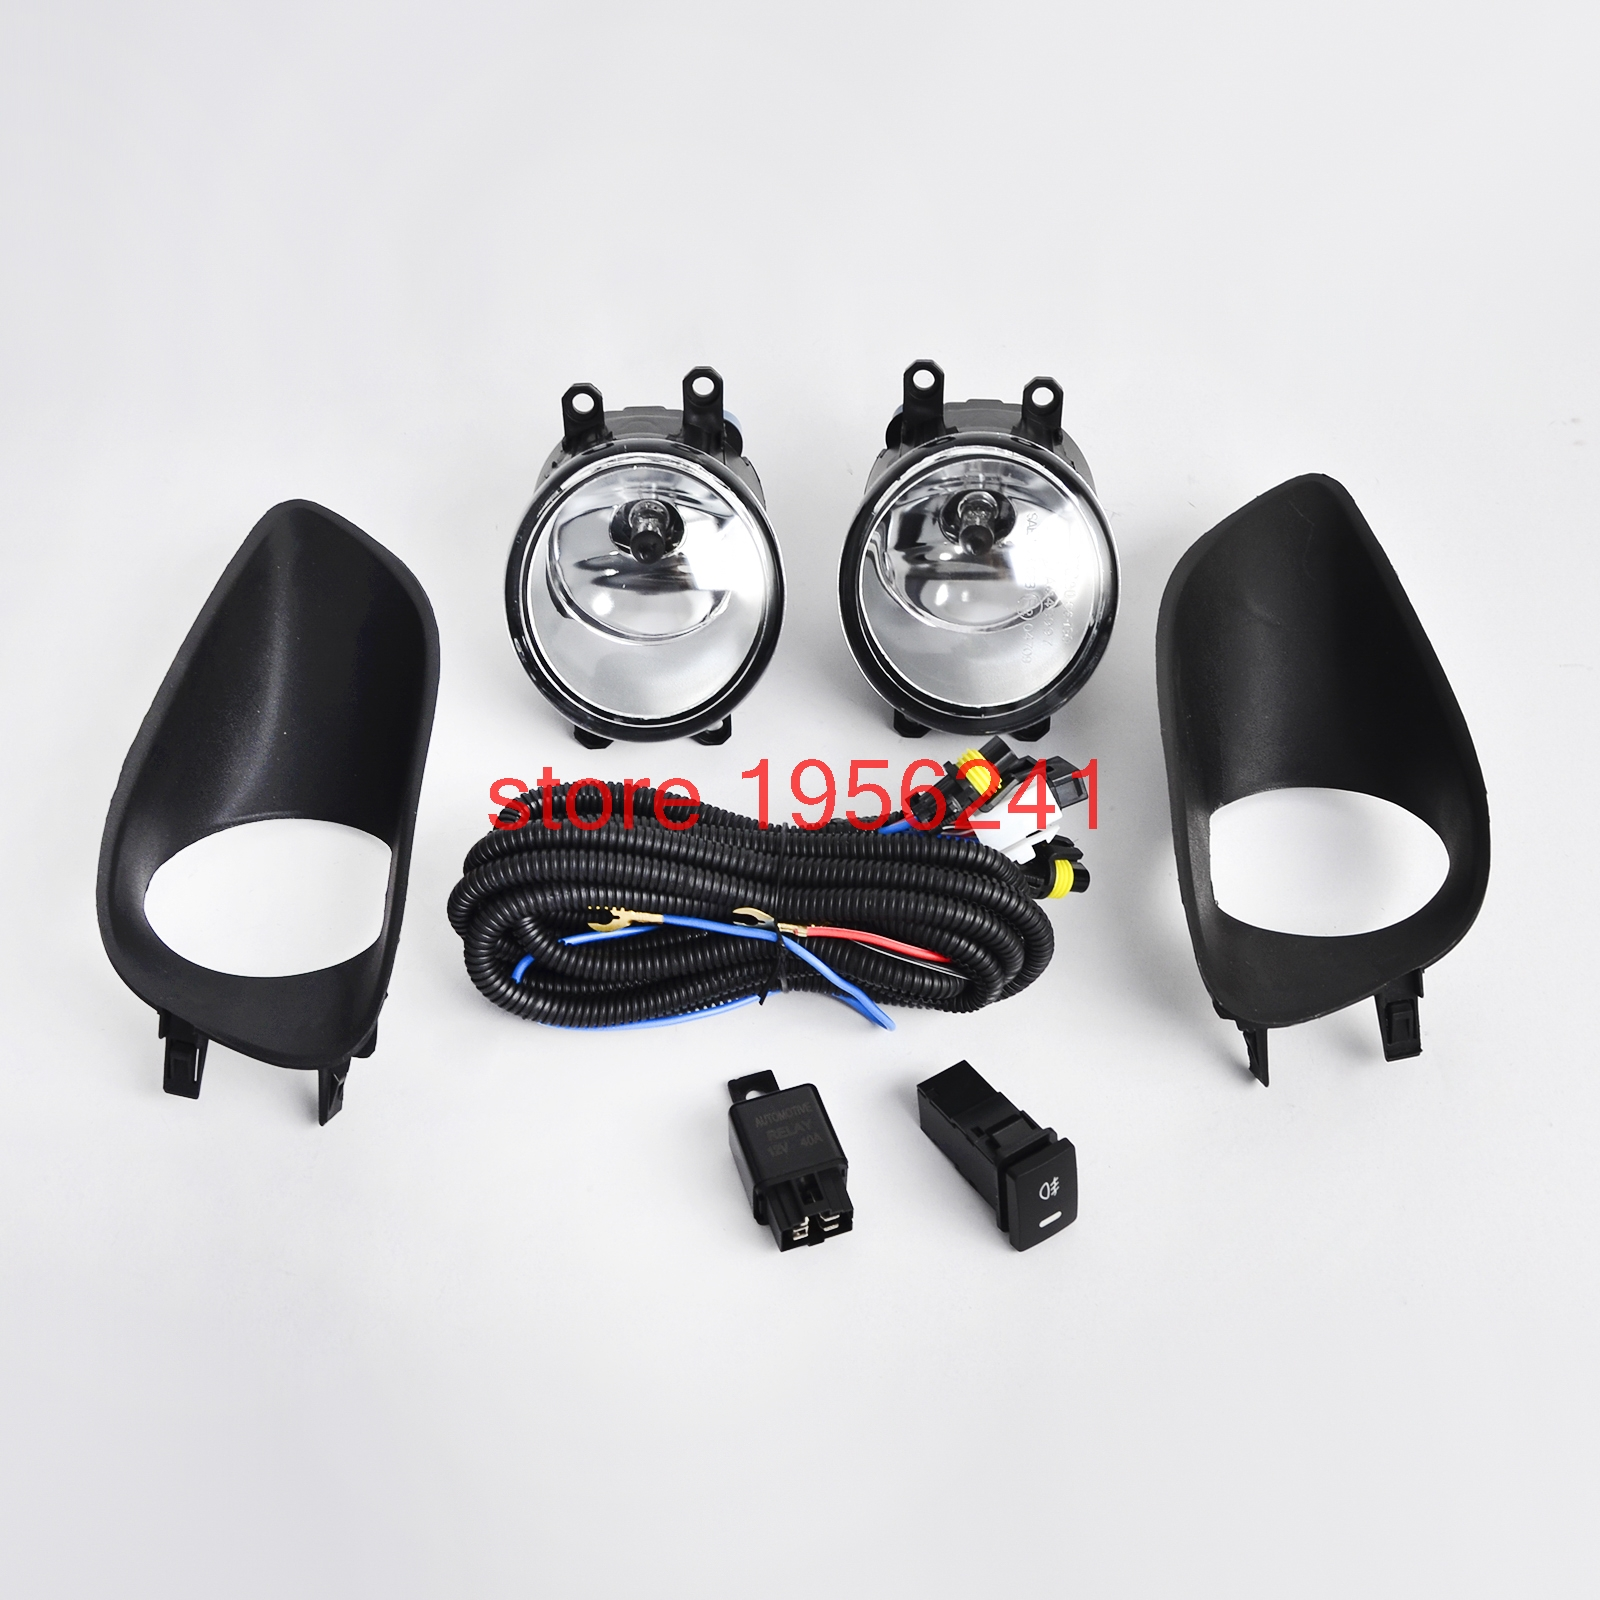 H2CNC 1 Pair Front Bumper Fog Light Clear & Switch Wiring Harness For Toyota Yaris S/Base 2006 2011 Sedan 4 Door